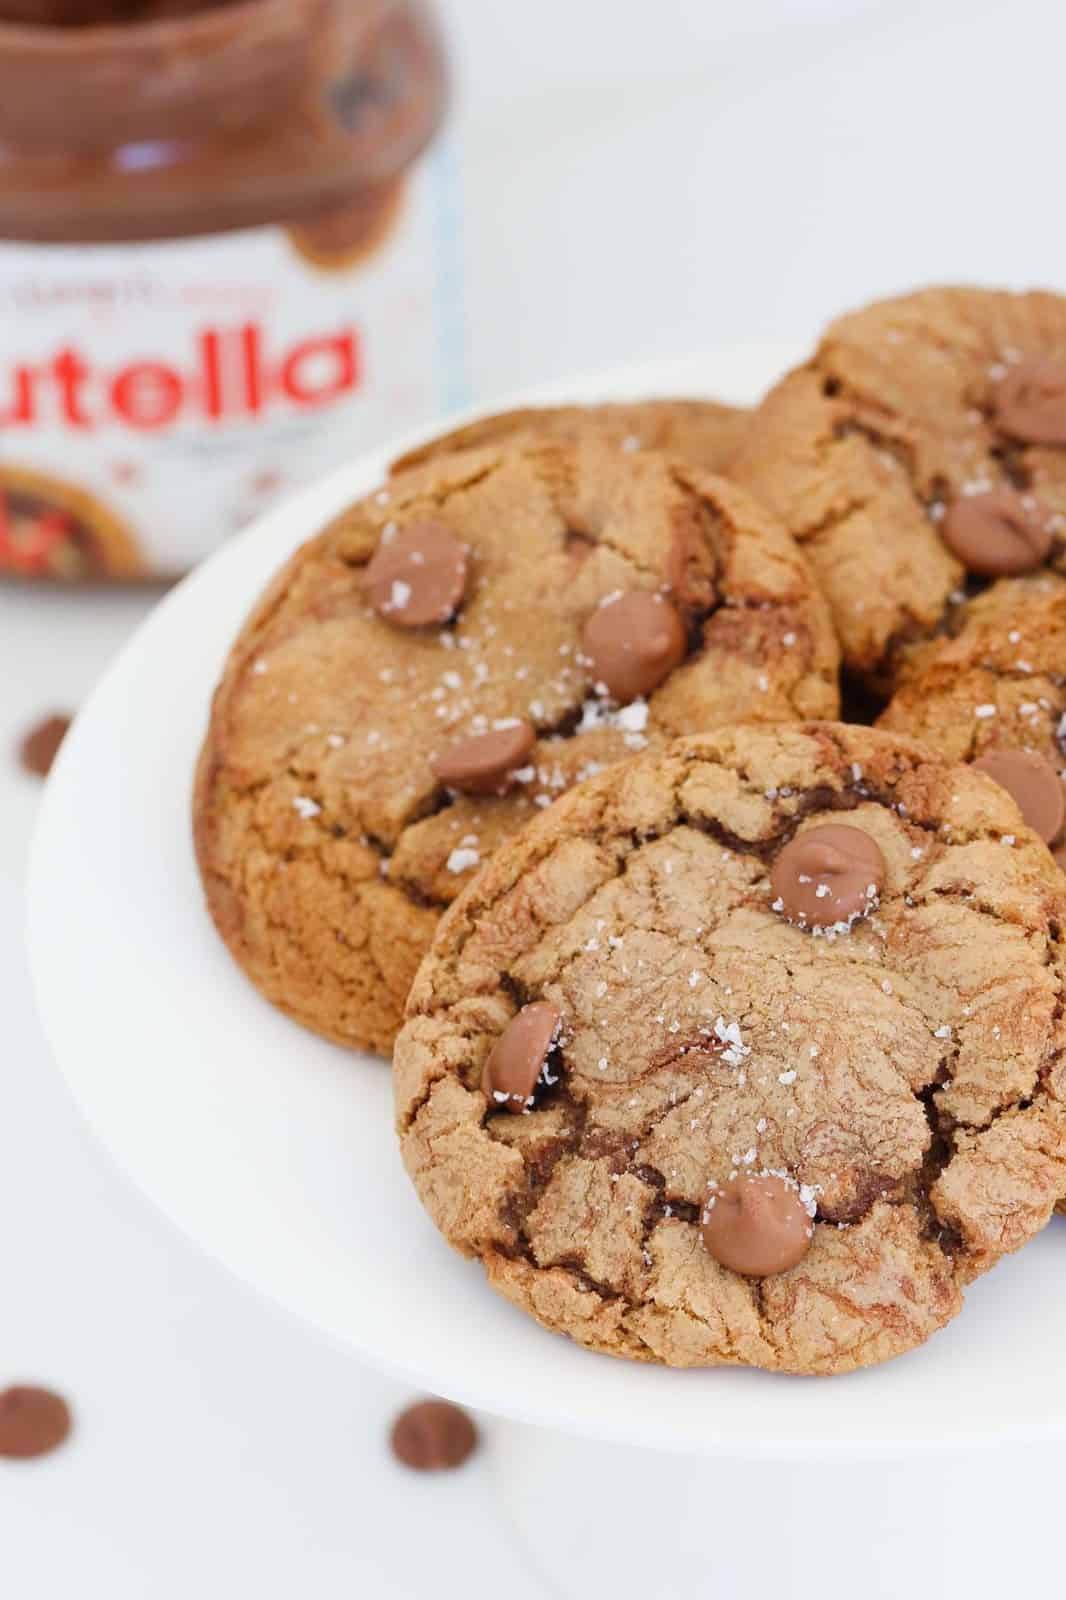 A close up of Nutella cookies with chocolate chips and sea salt on top served on a white cake stand.